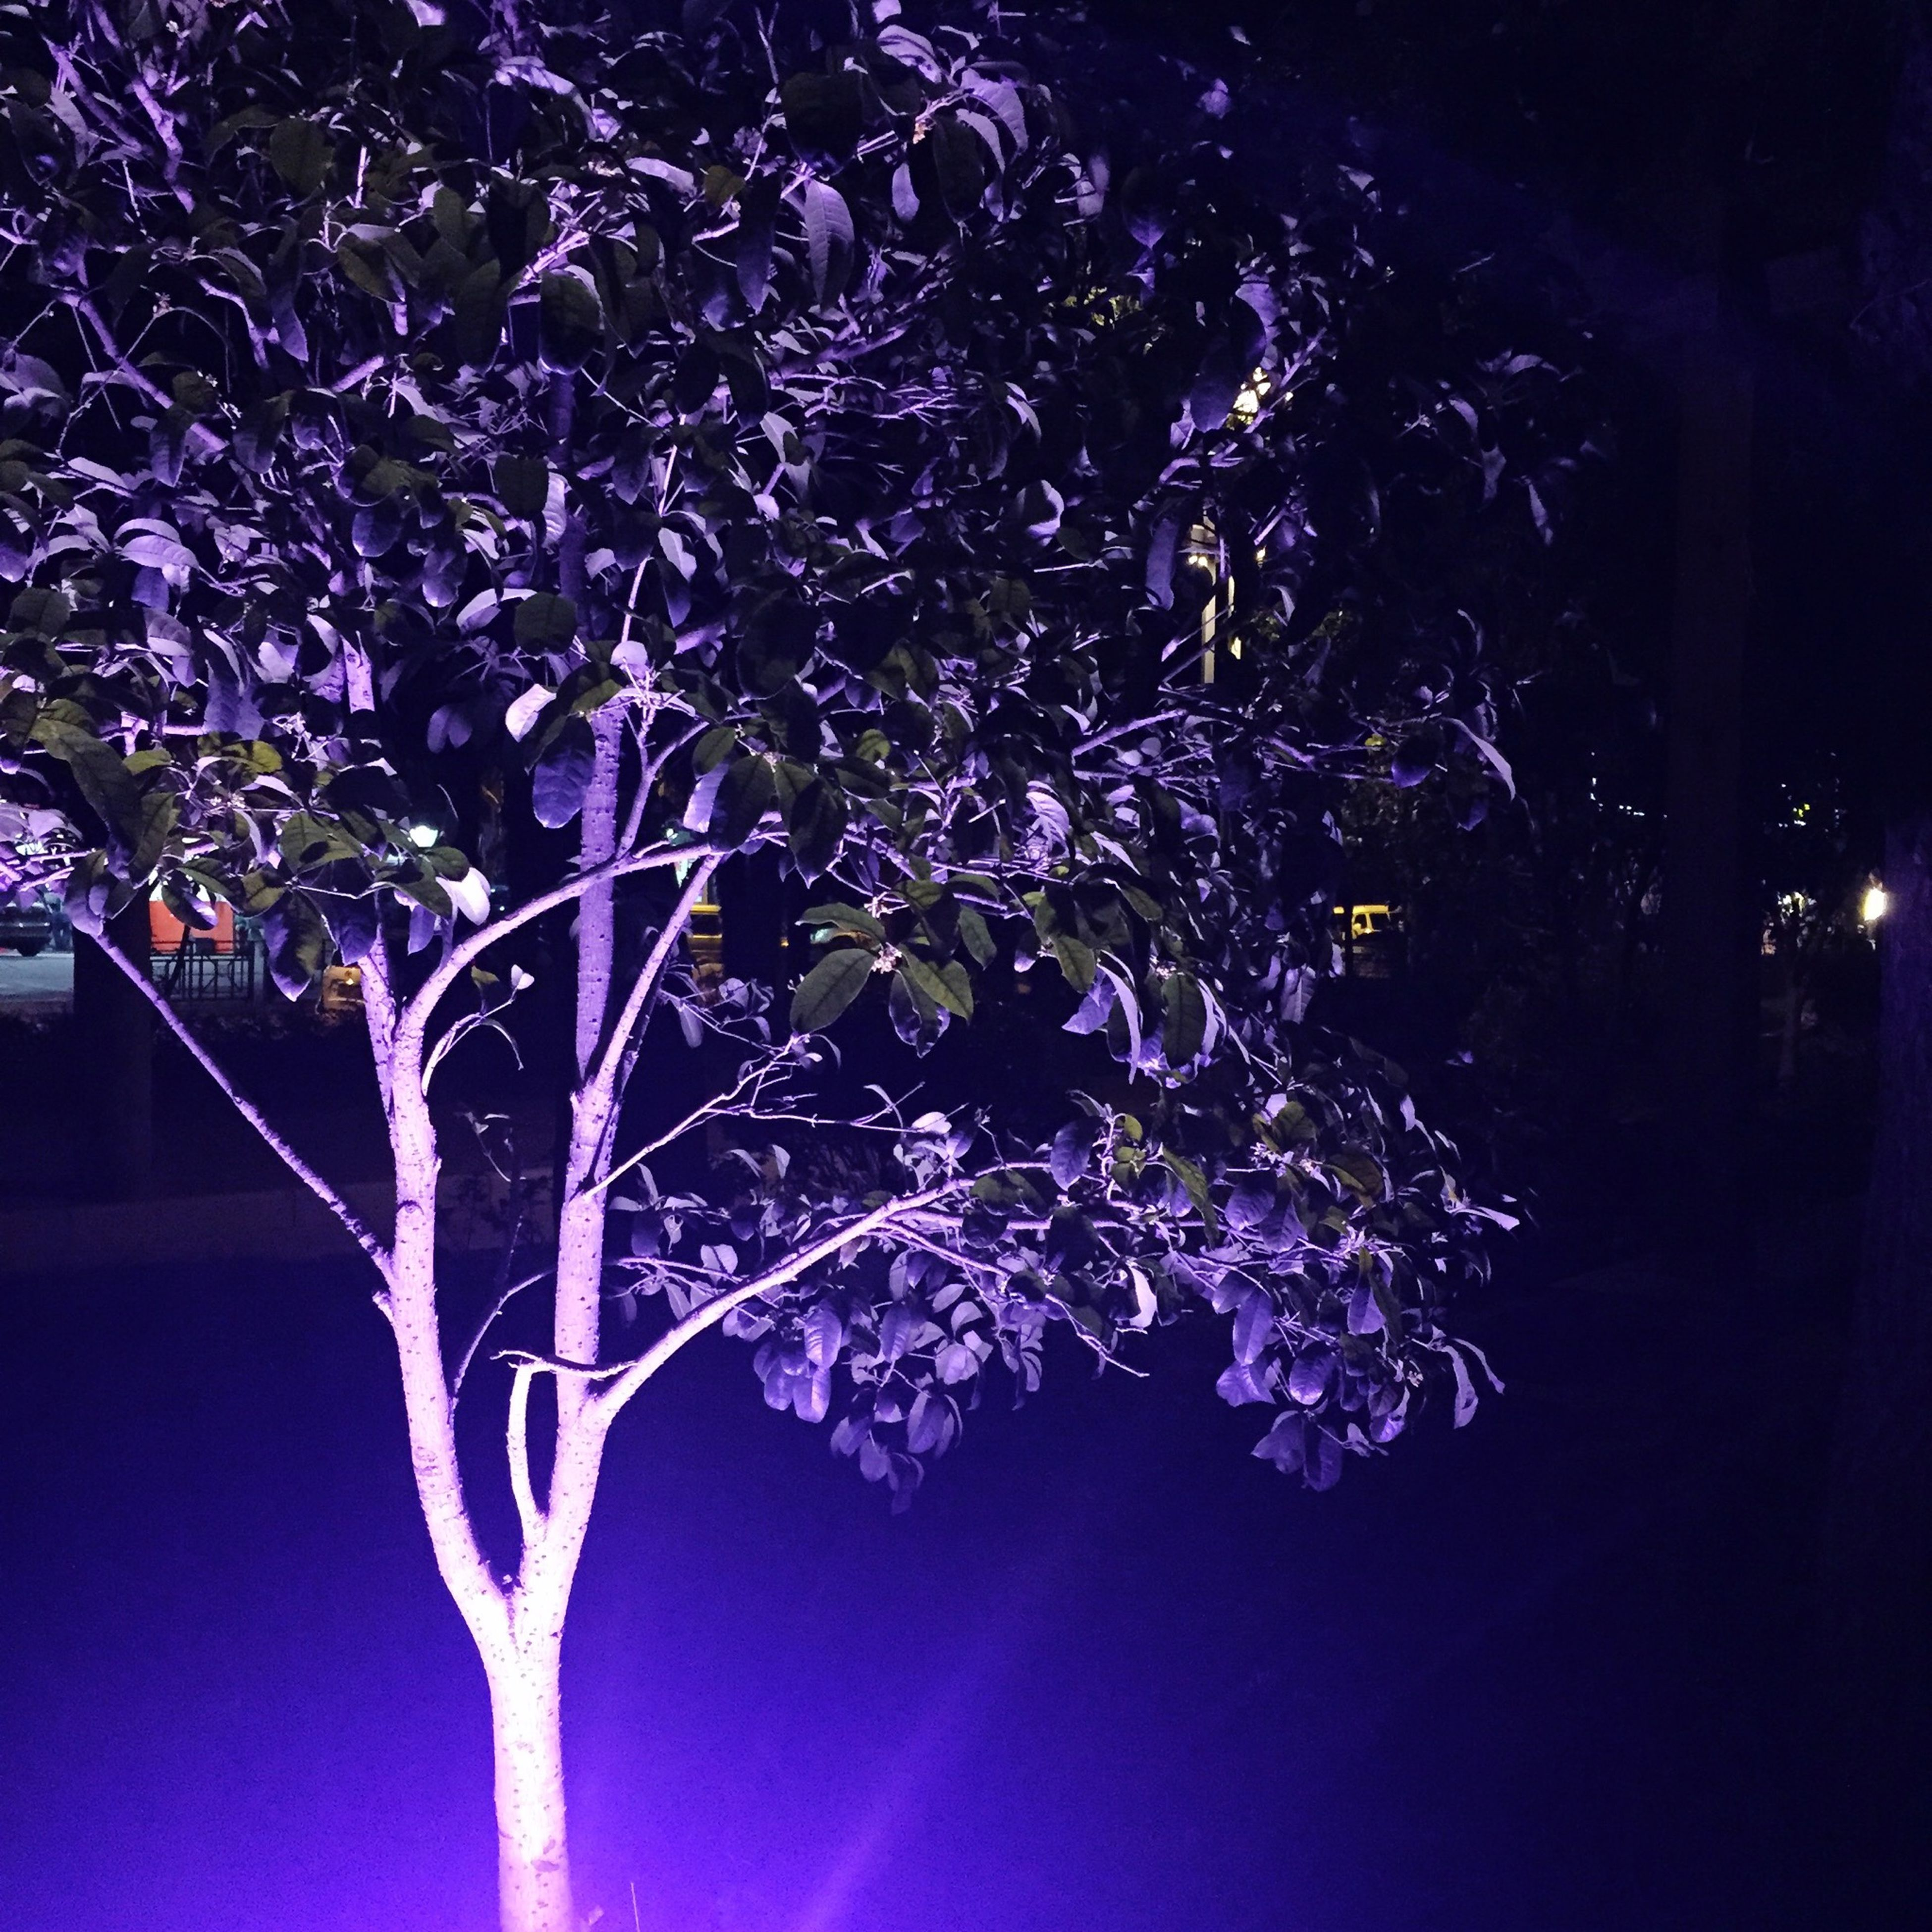 night, tree, branch, growth, illuminated, low angle view, nature, beauty in nature, flower, lighting equipment, no people, outdoors, blue, purple, light - natural phenomenon, park - man made space, tranquility, dark, plant, sky